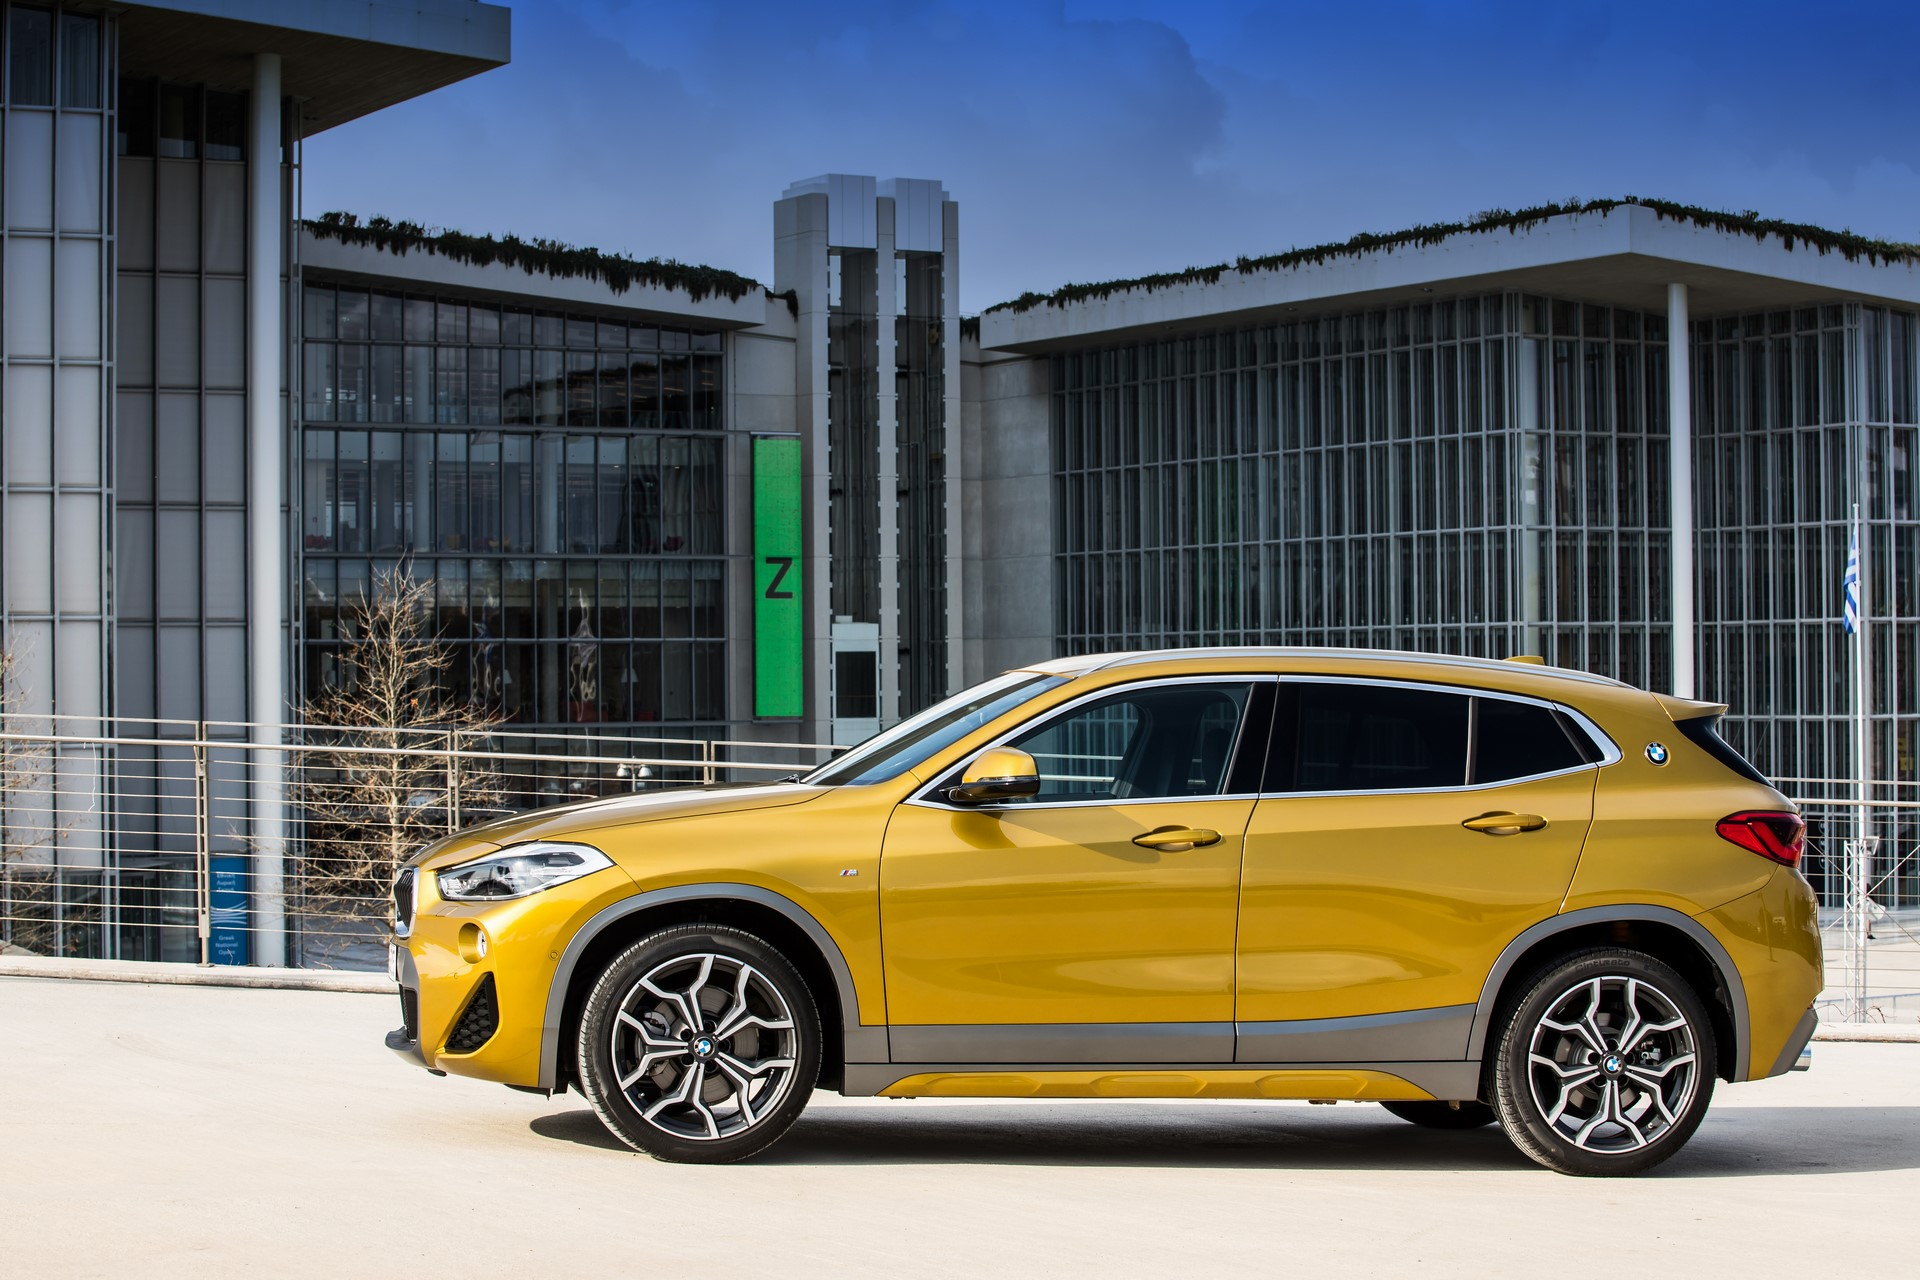 BMW X2 Greek 2018 (17)